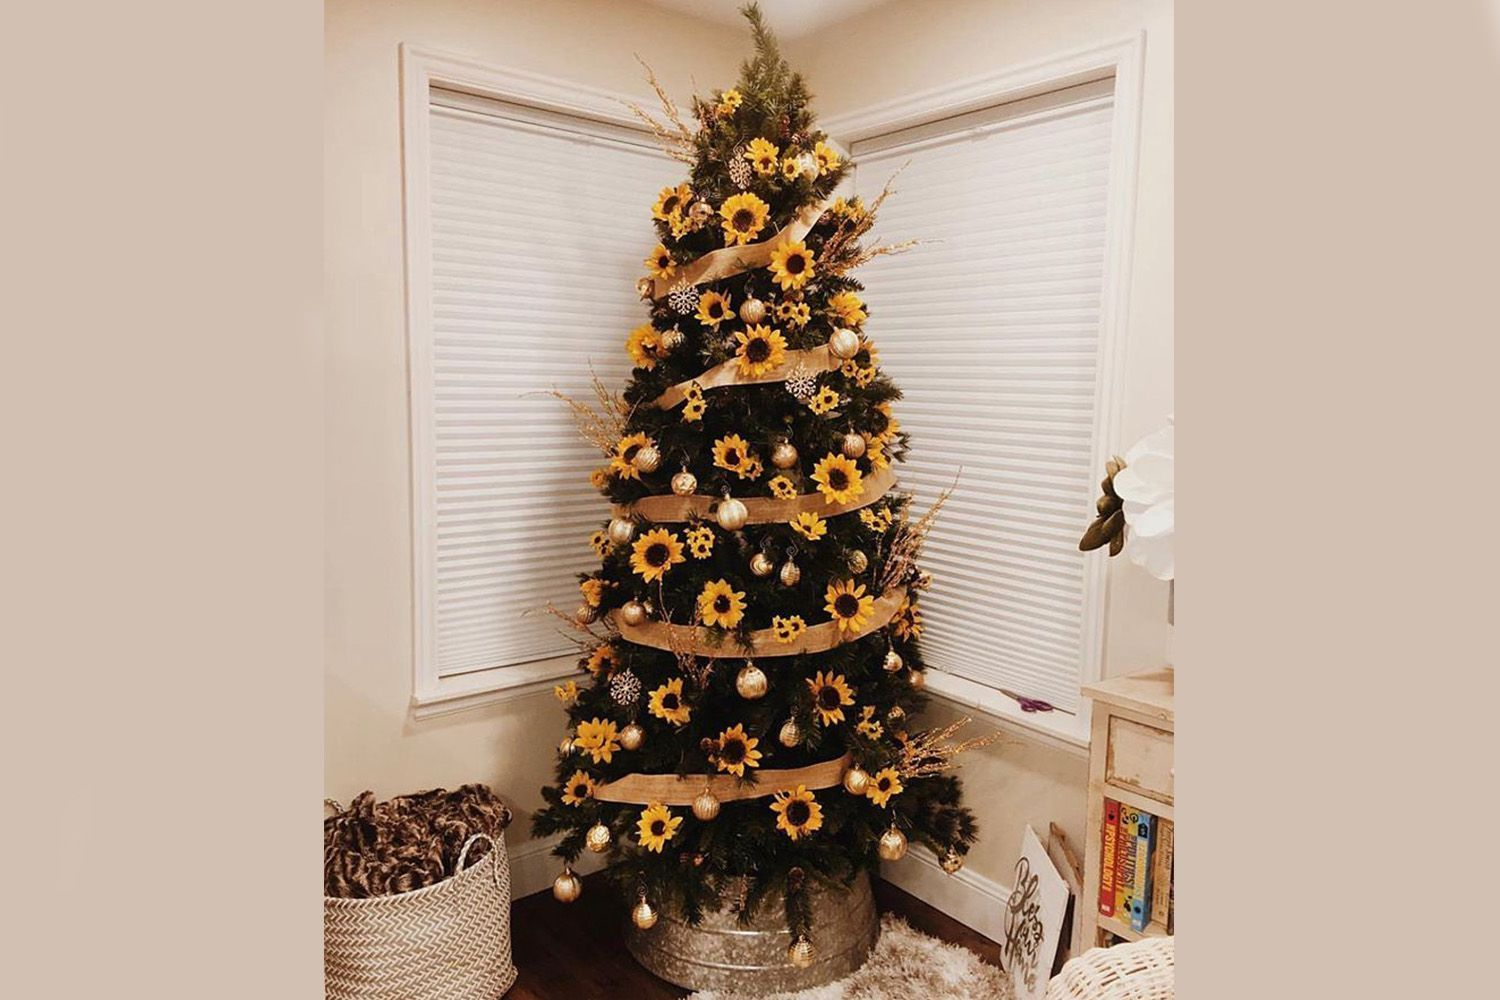 The sunflower Christmas tree trend of 2019